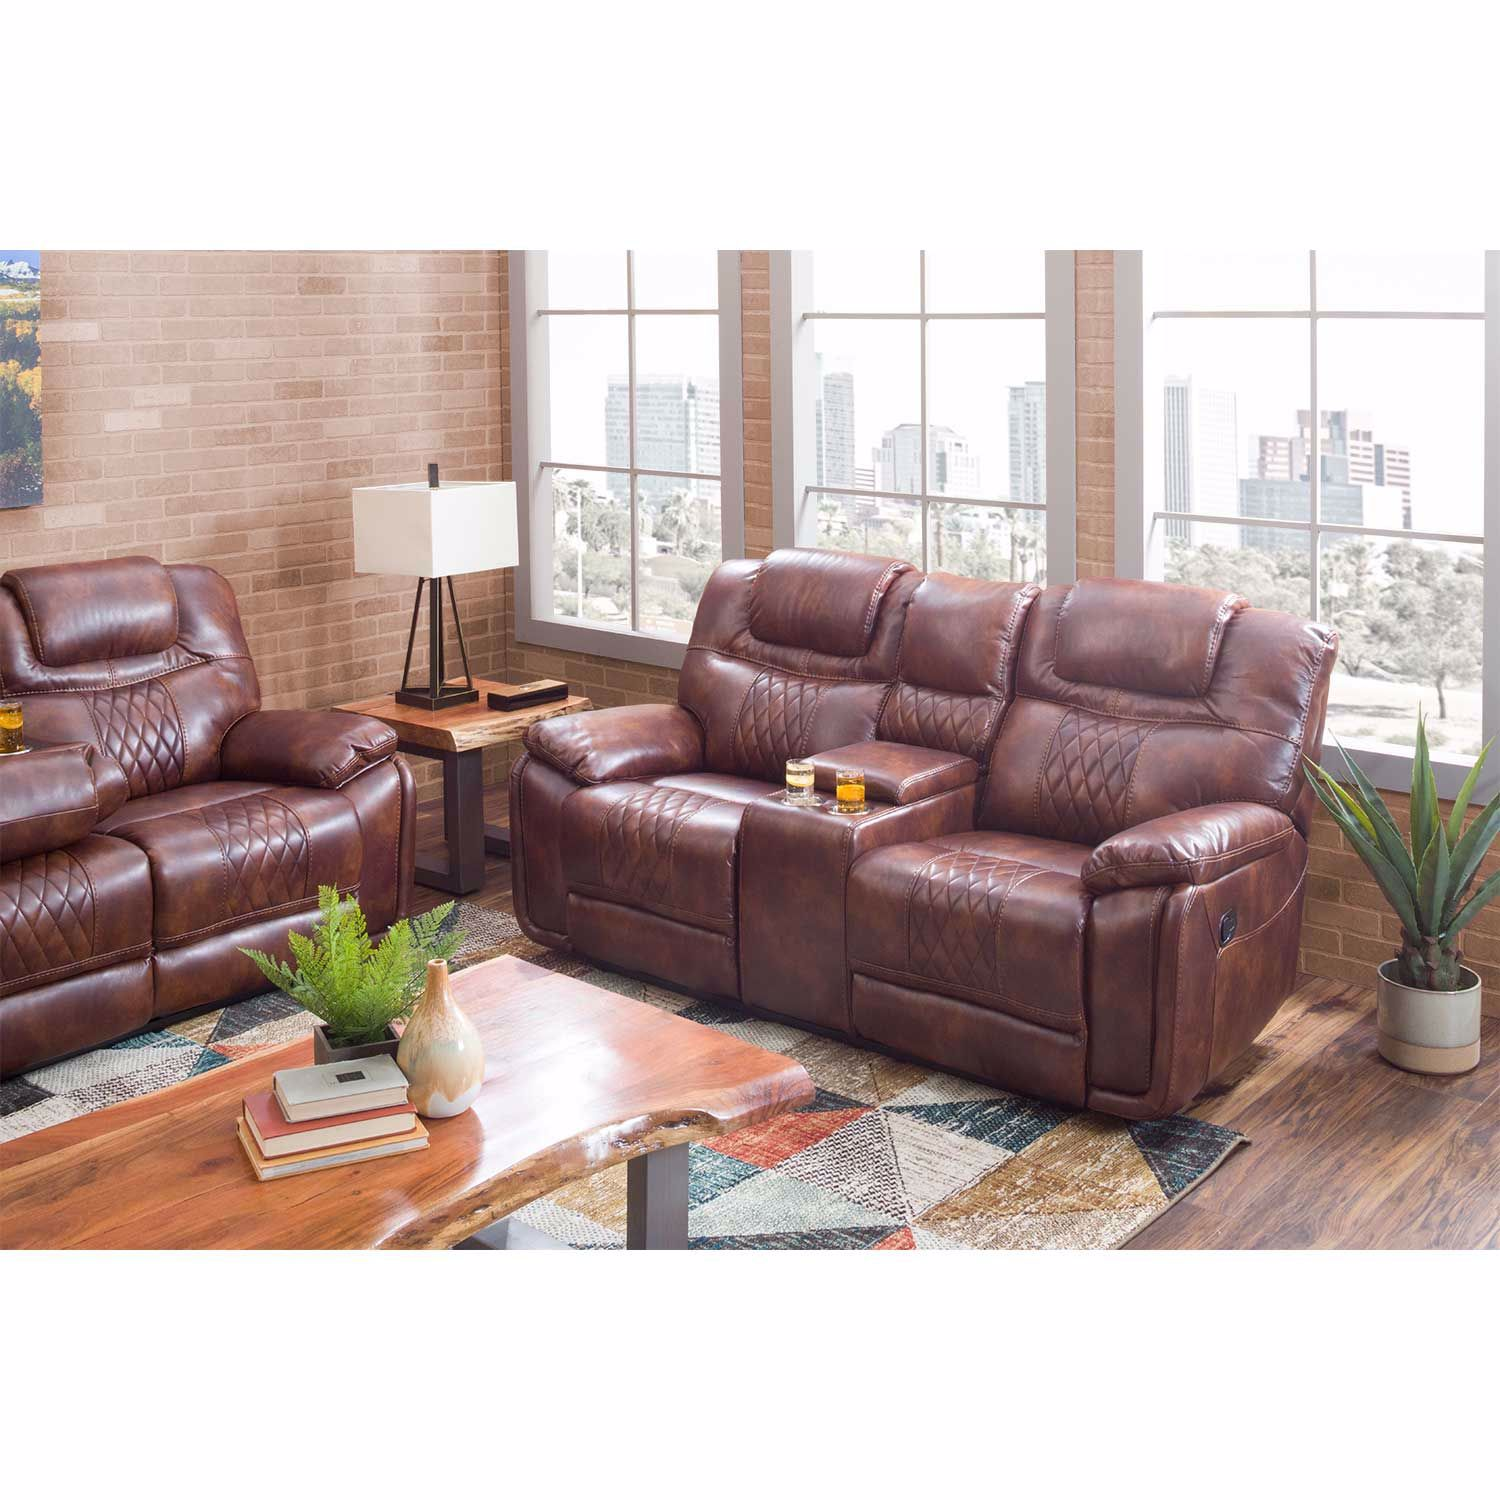 Picture of Astro Reclining Sofa with DDT